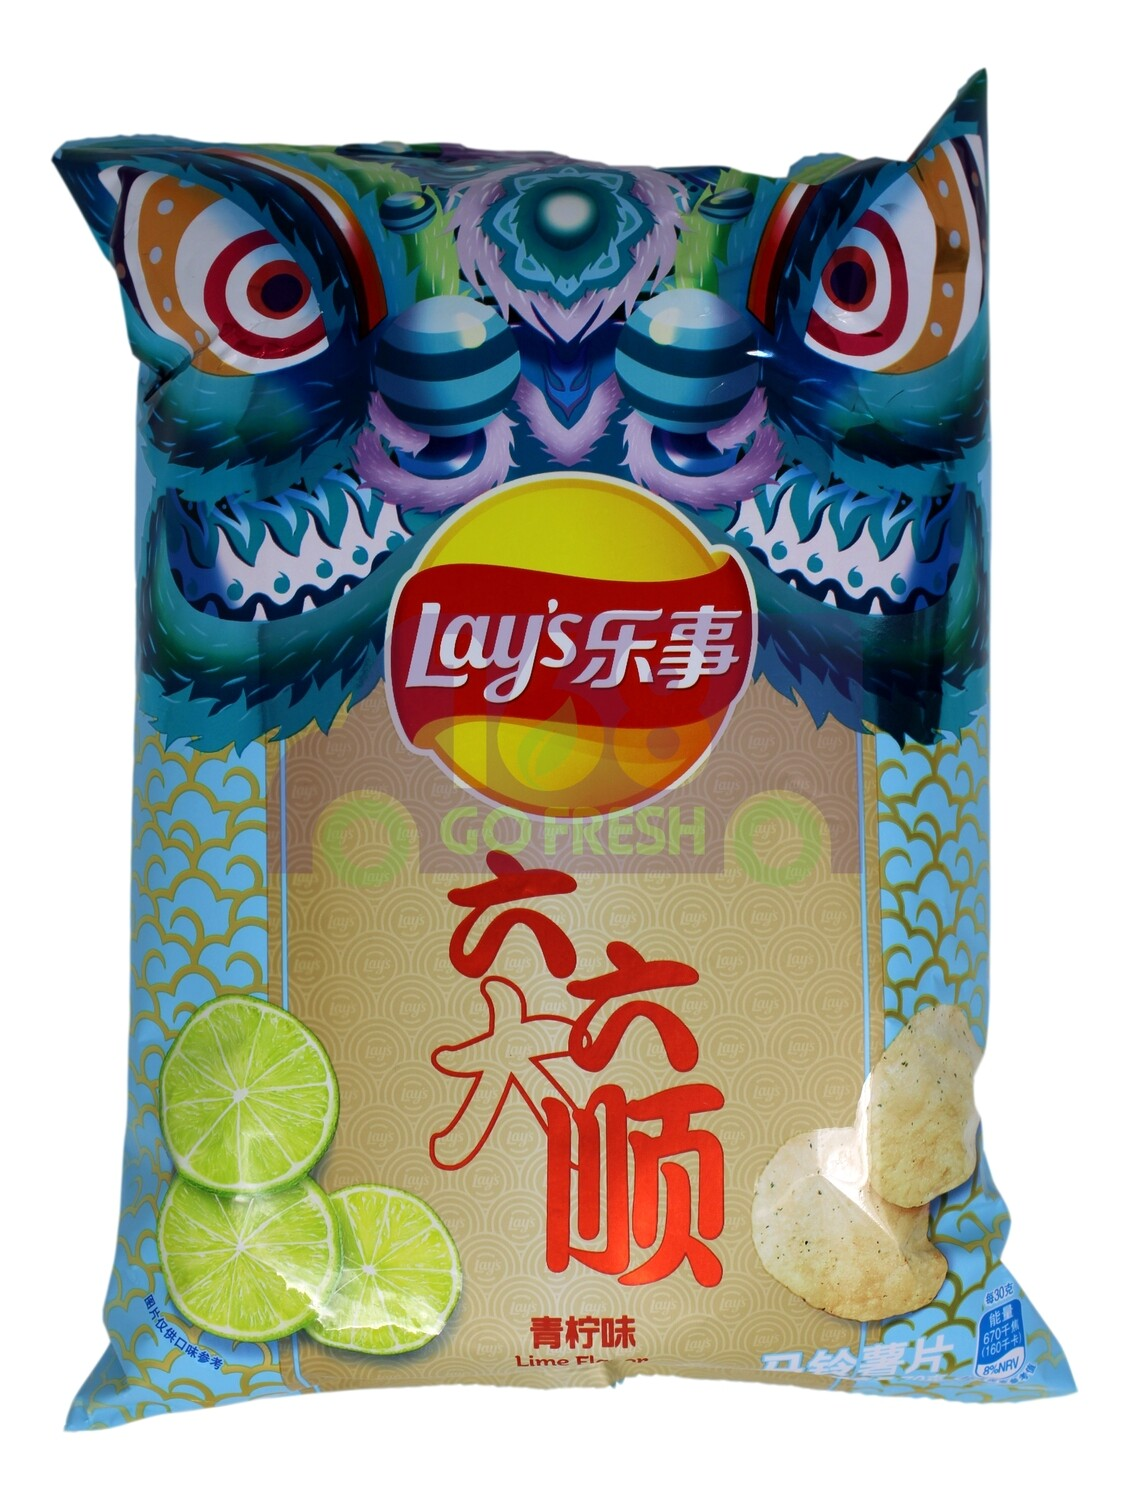 LAY'S LIME FLAVOR CHIPS 乐事 马铃薯片 青柠味(70G)